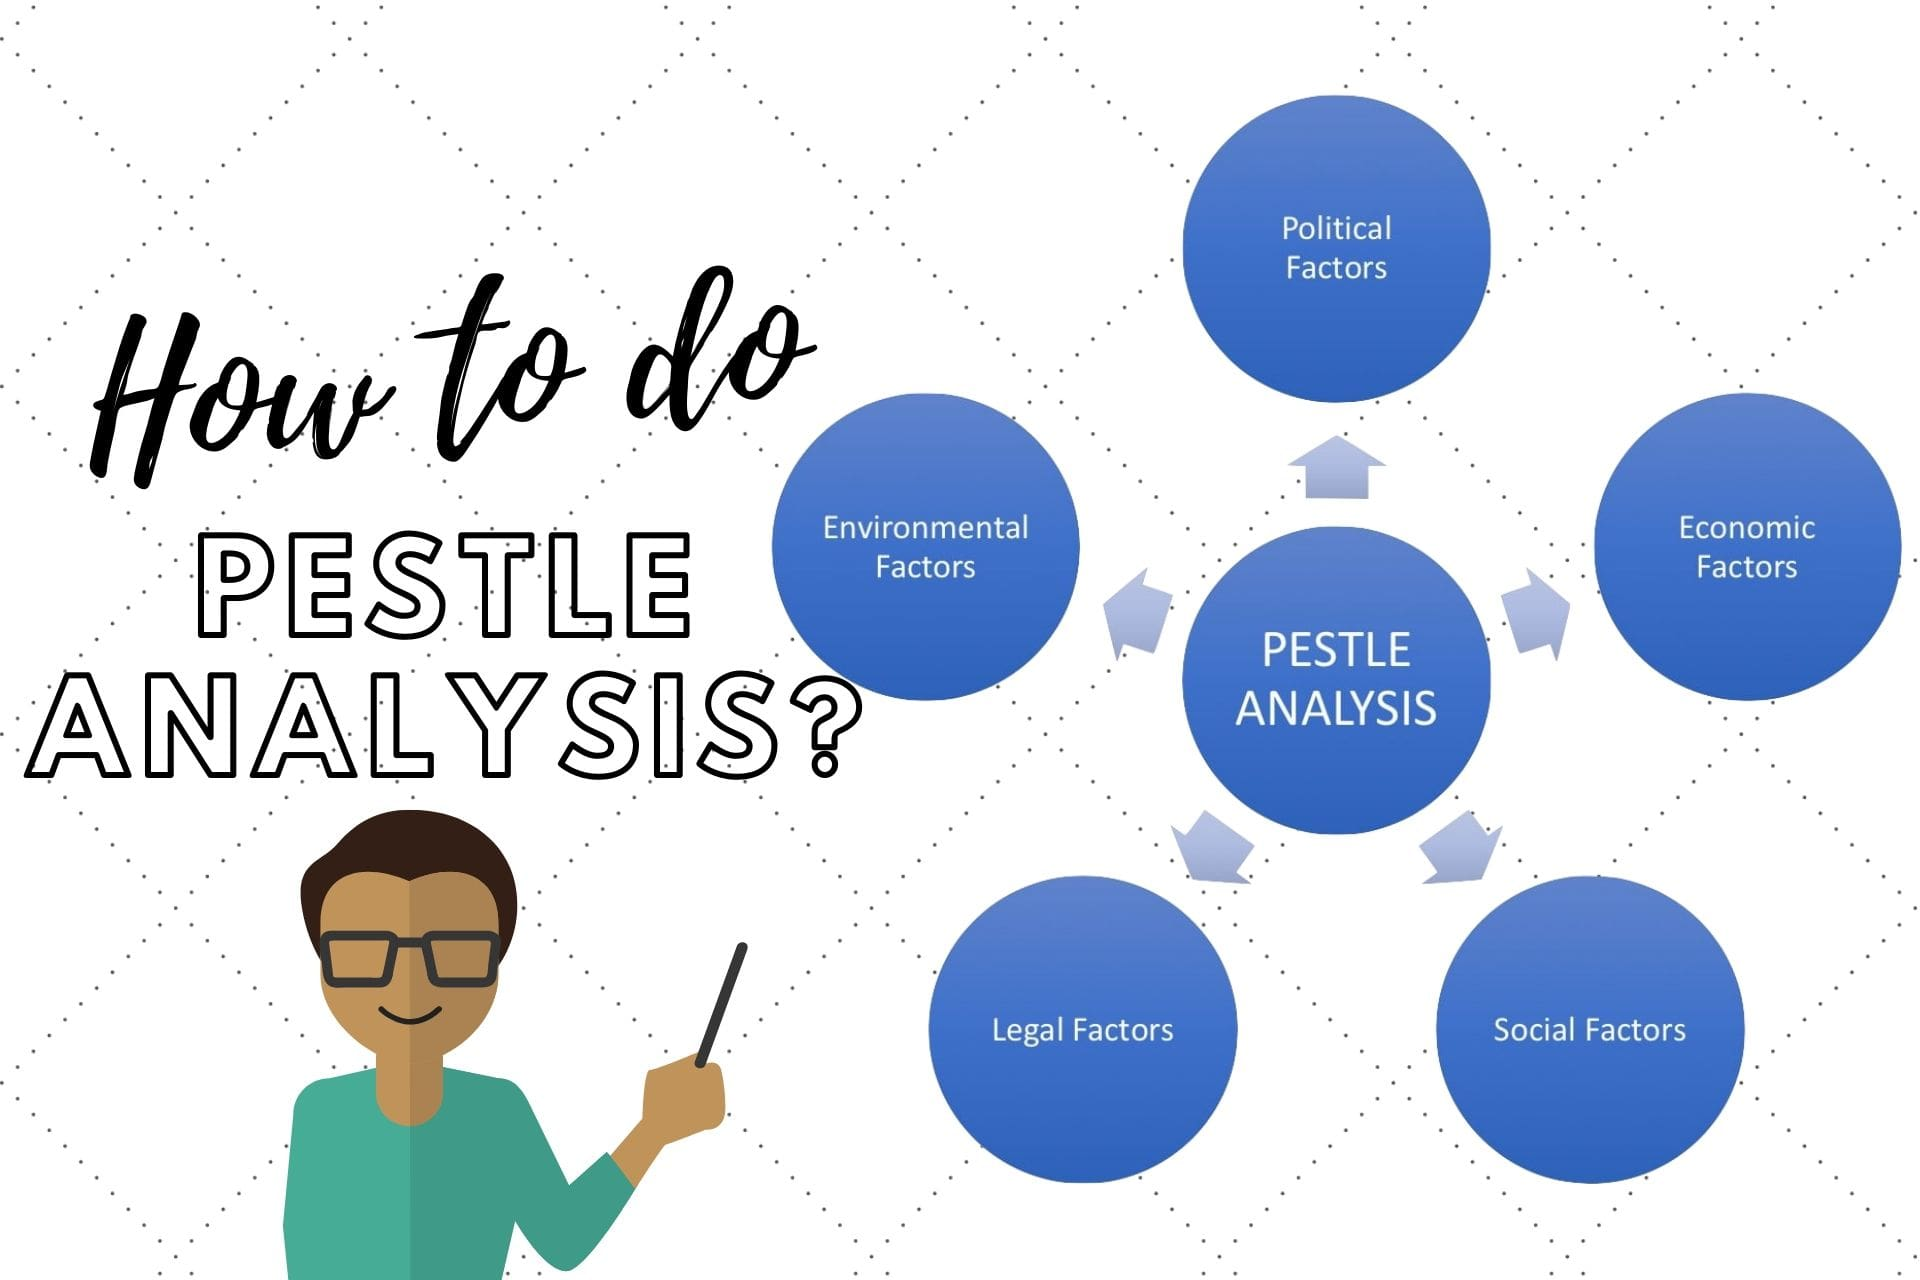 Explained: How is PESTLE Analysis (With Example)? How to Perform it?